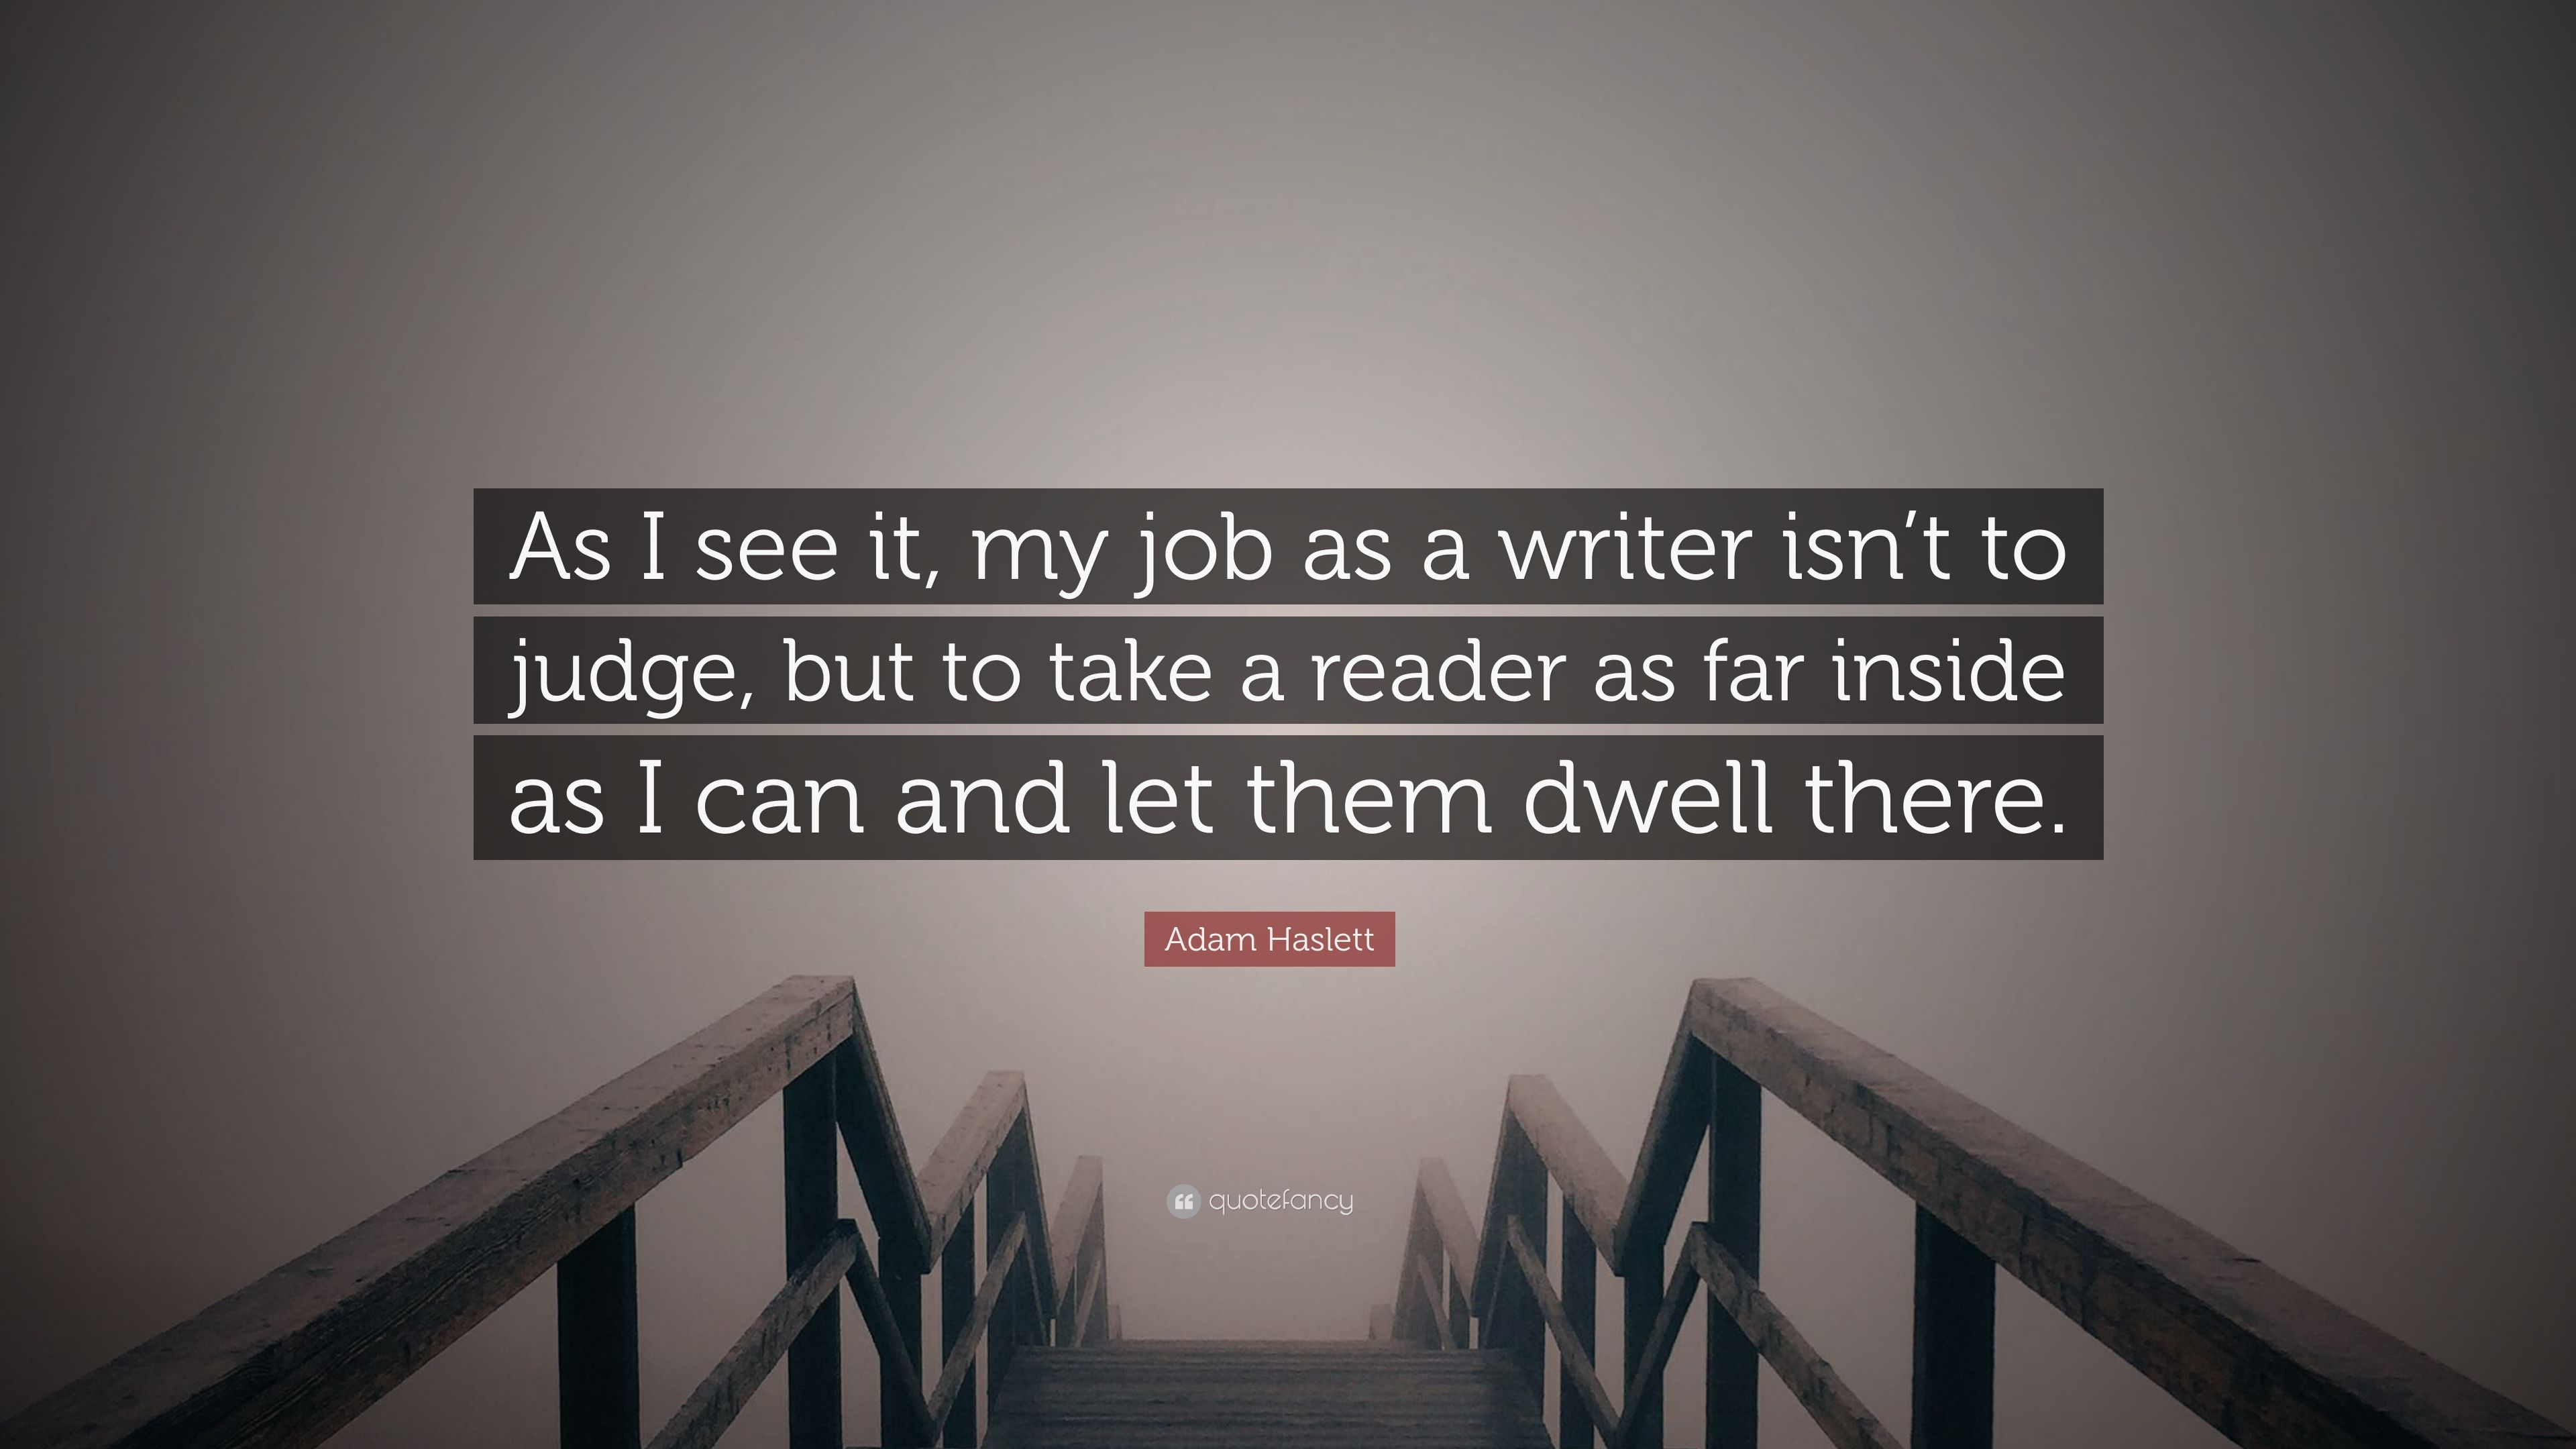 adam haslett quote ldquo as i see it my job as a writer isn t to adam haslett quote ldquoas i see it my job as a writer isn